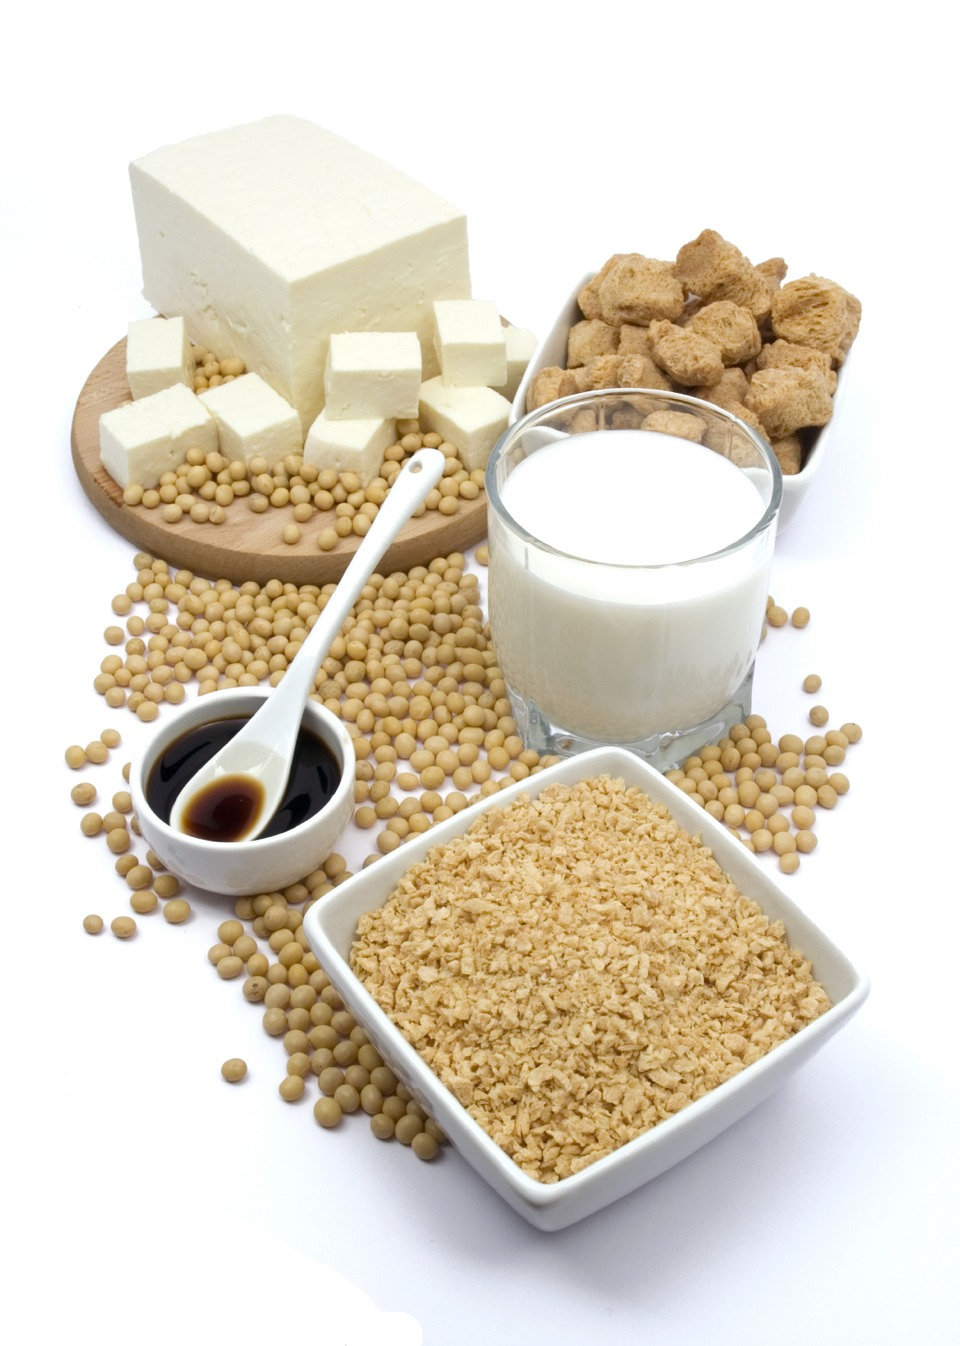 Soy According to a study published in the European Journal of Nutrition, ingesting soy regularly can help reduce the appearance of fine lines and wrinkles. Study participants saw significant results in six months—and they had less dark spots and under eye circles, too!